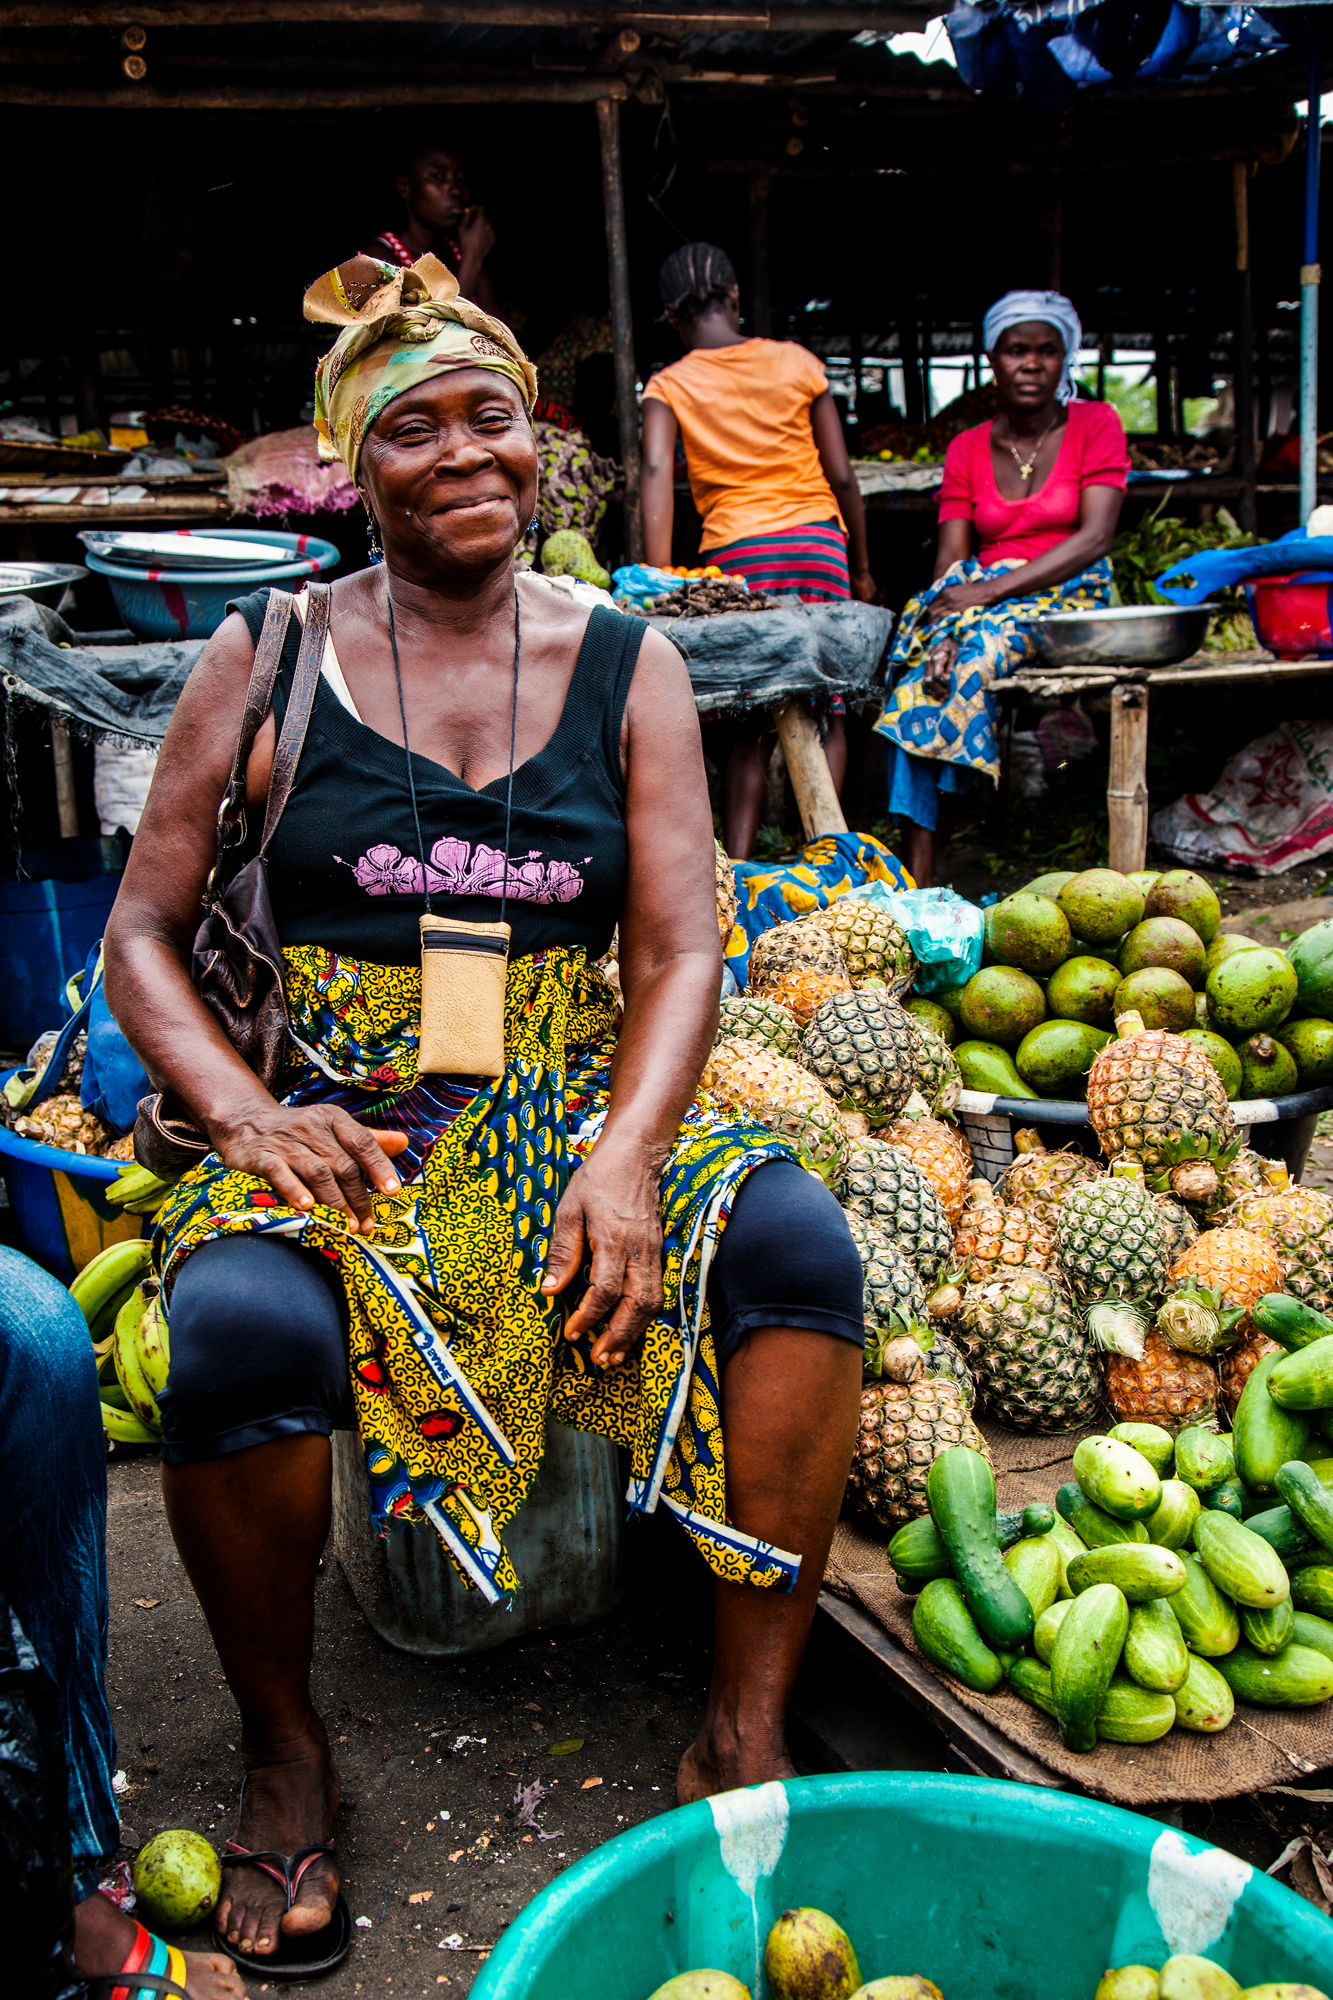 the Pineapple Lady